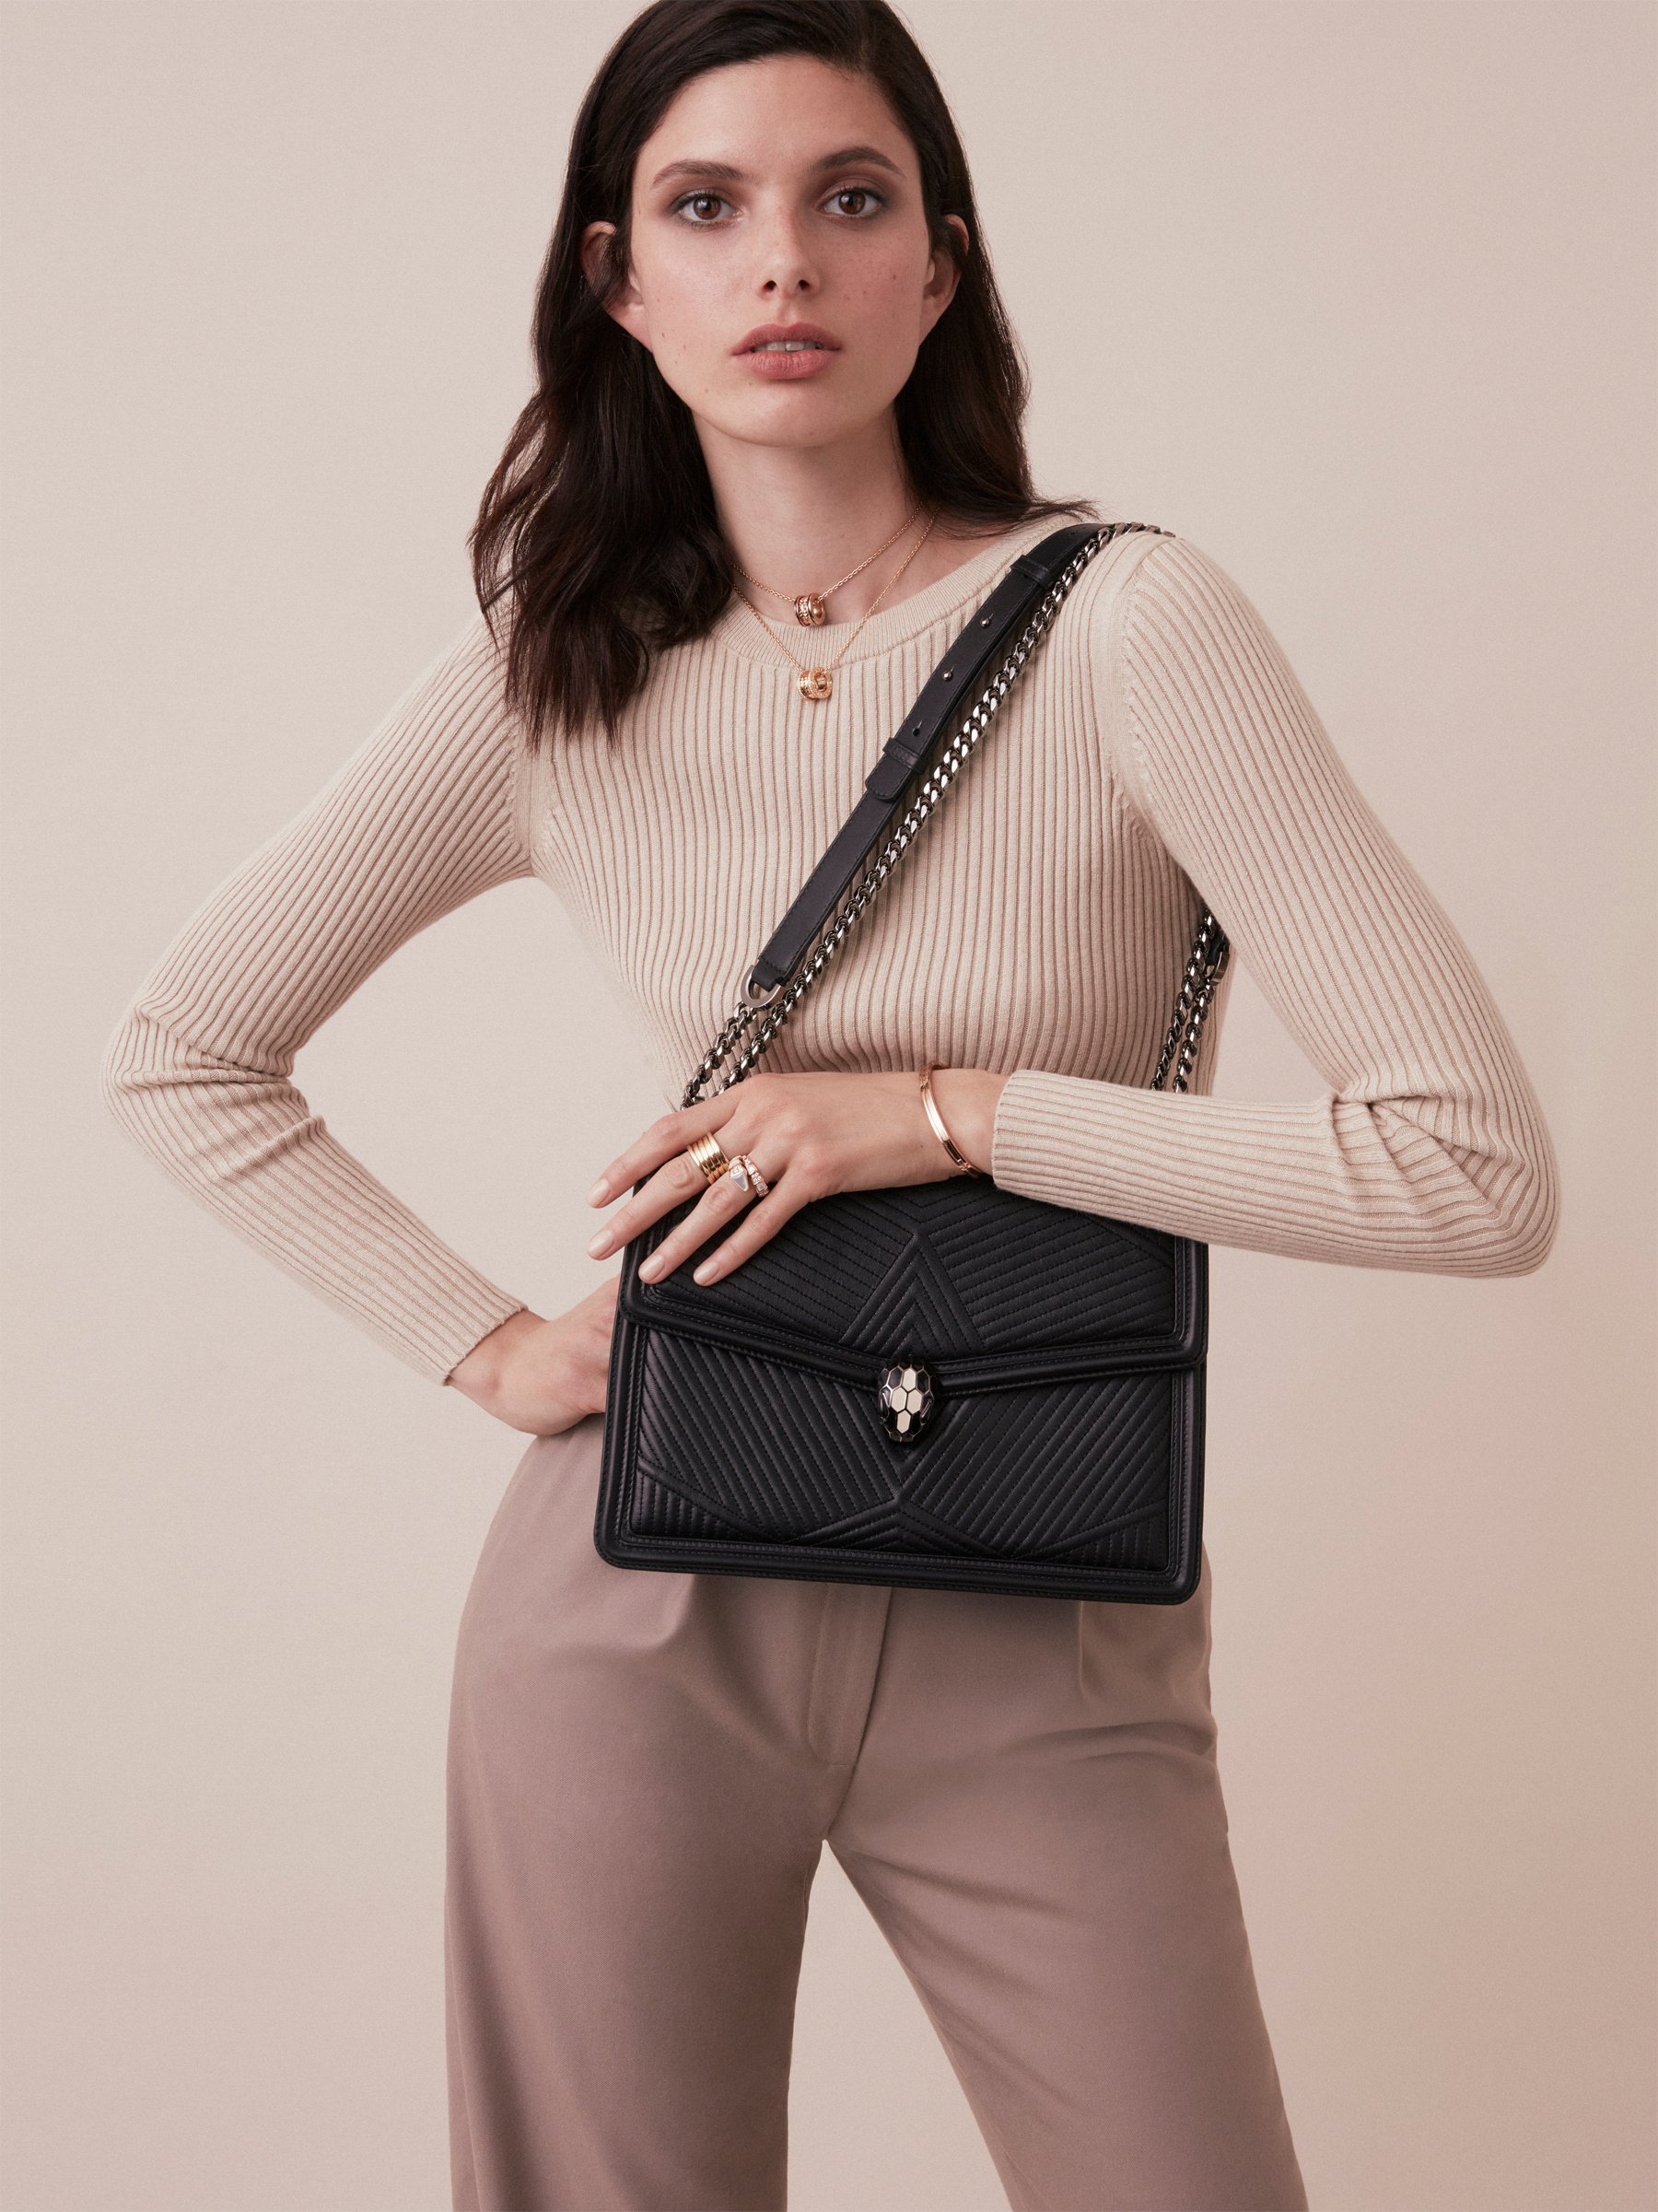 """Serpenti Diamond Blast"" shoulder bag in black quilted nappa leather body and black calf leather frames. Iconic snakehead closure in dark ruthenium plated brass enriched with black and white enamel and black onyx eyes. 973-FQDa image 5"